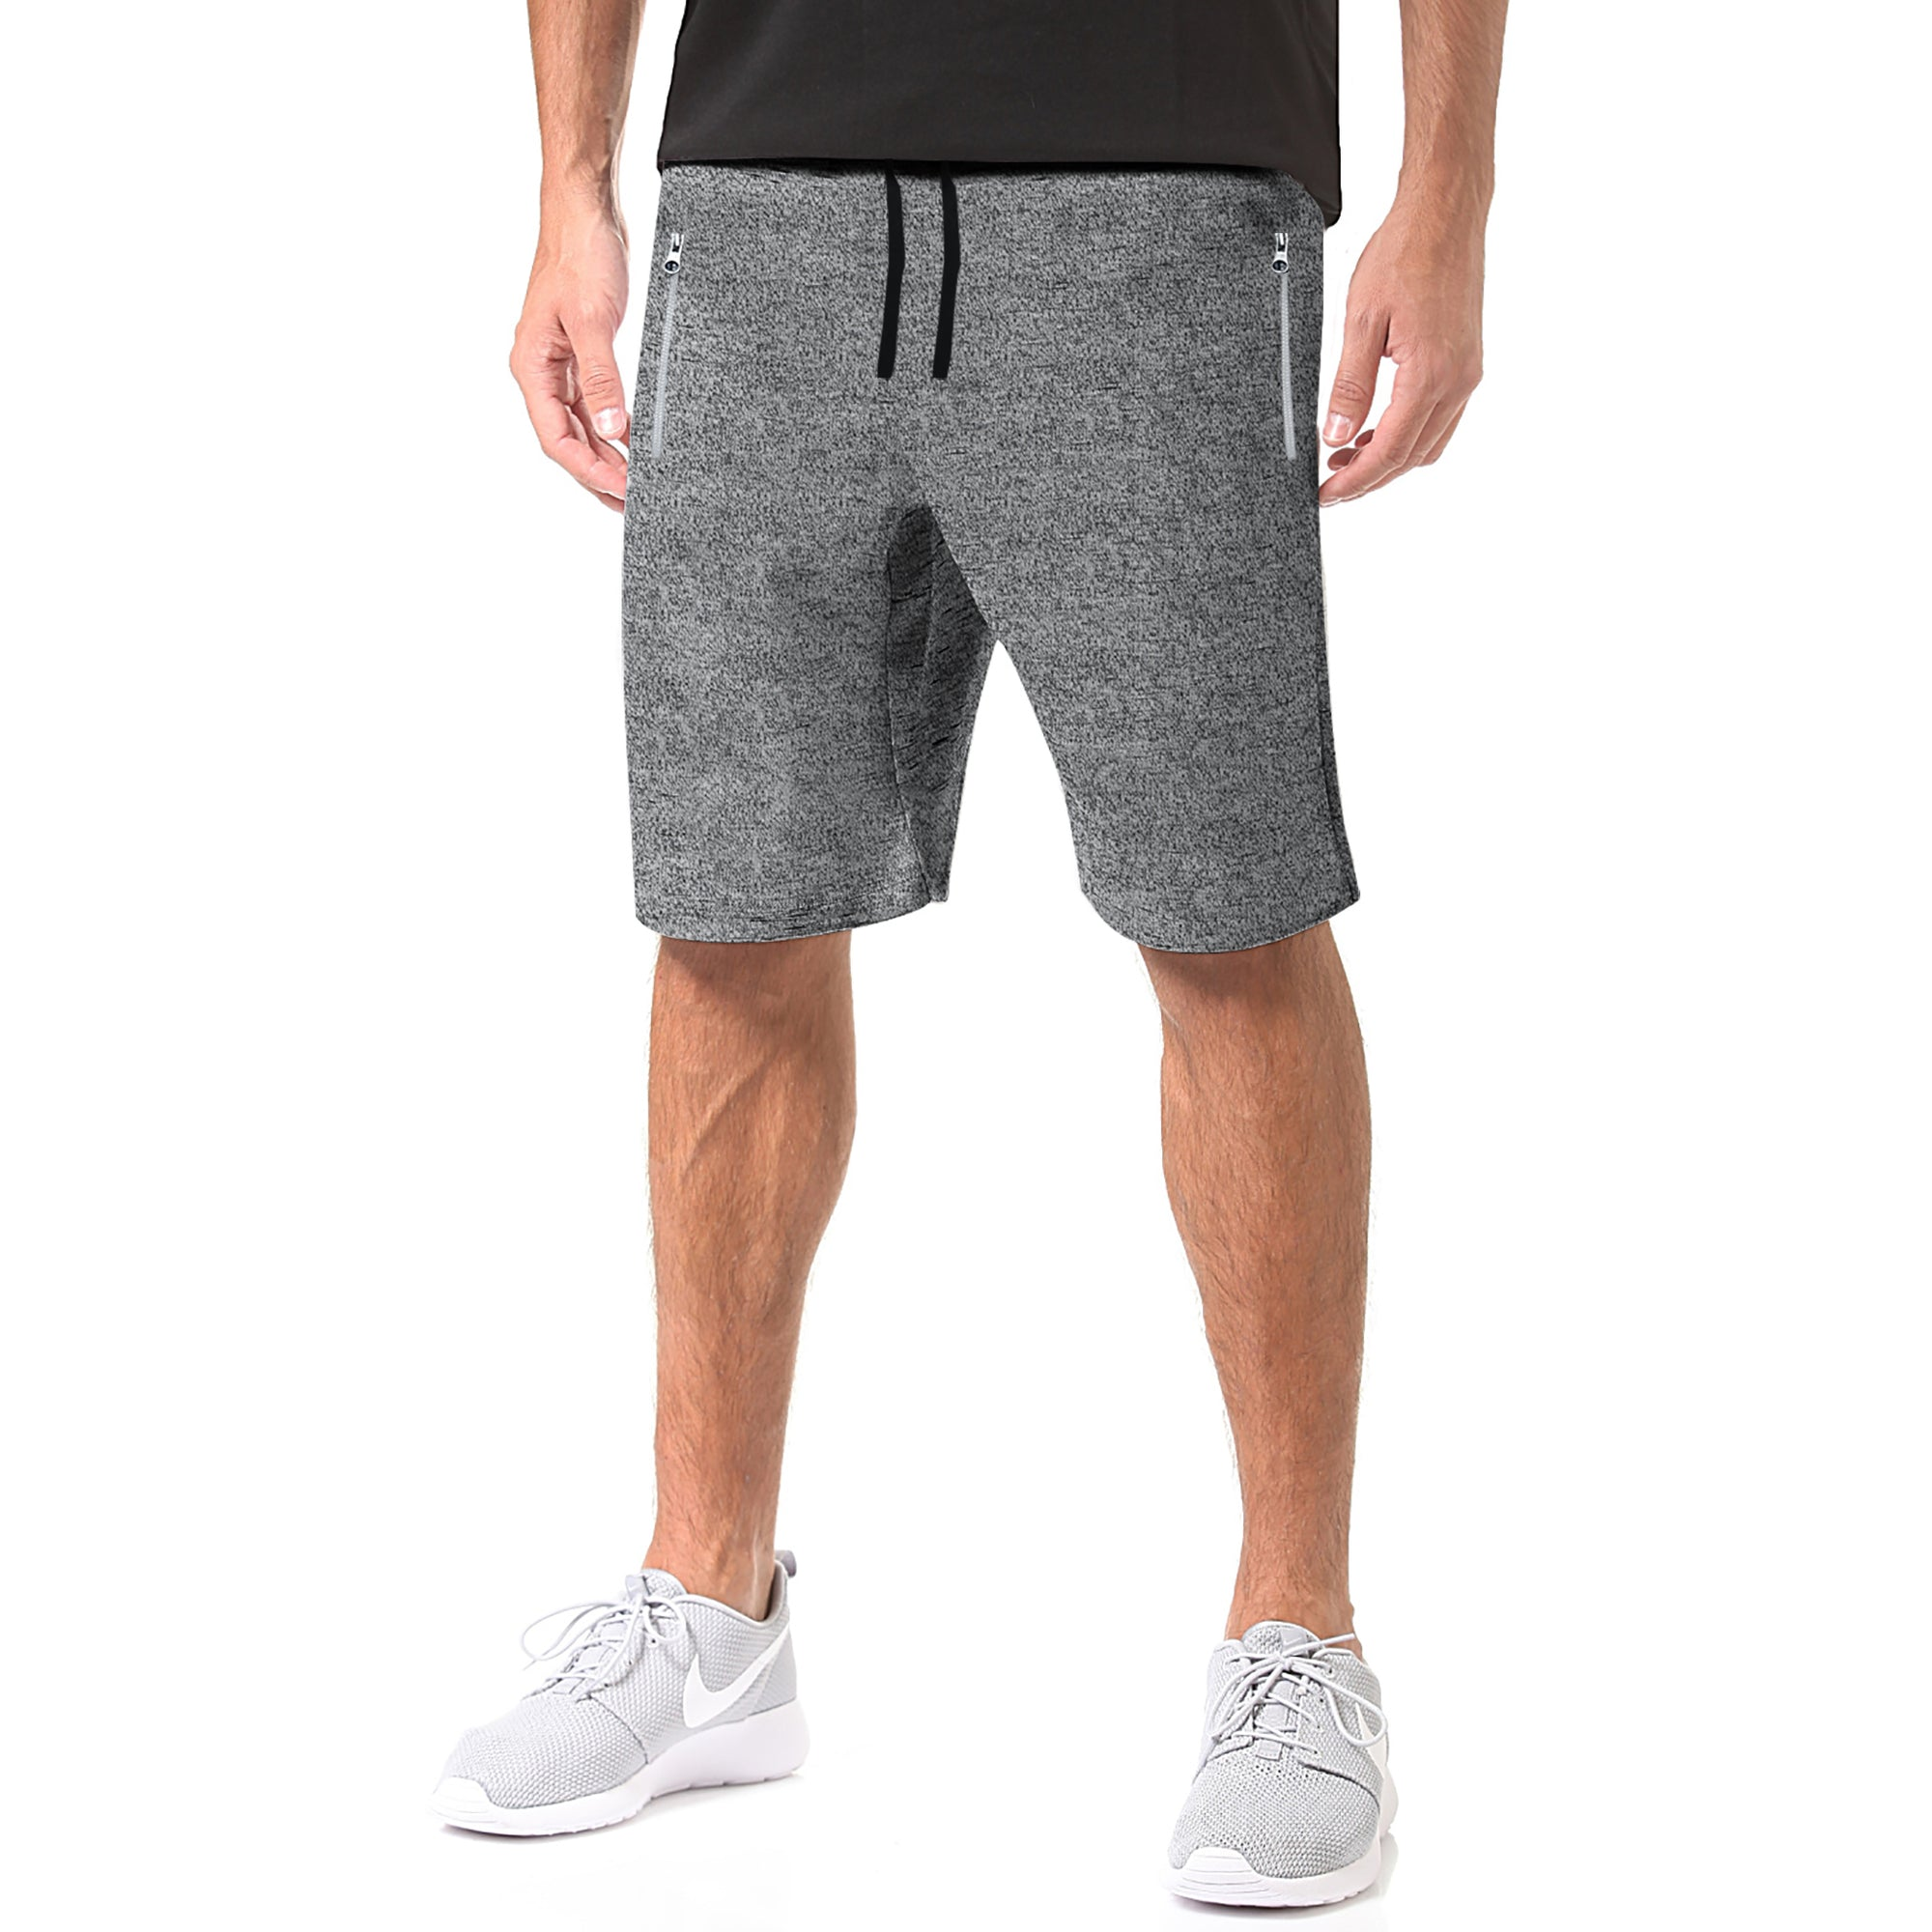 Next Terry Jersey Short For Men-Charcoal Melange-BE7869